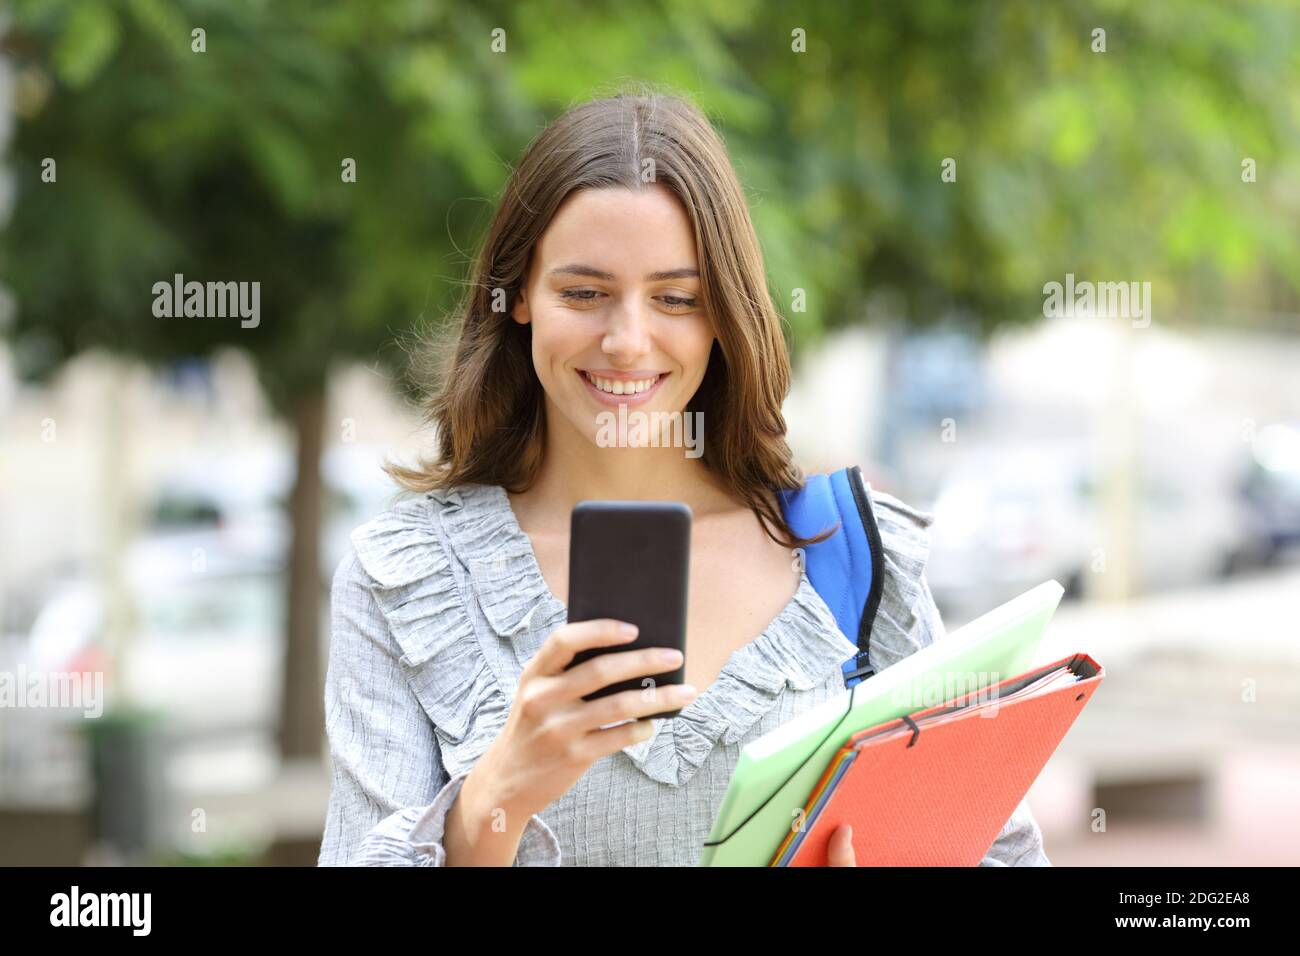 Front view portrait of a happy student walking checking smart phone in the street Stock Photo